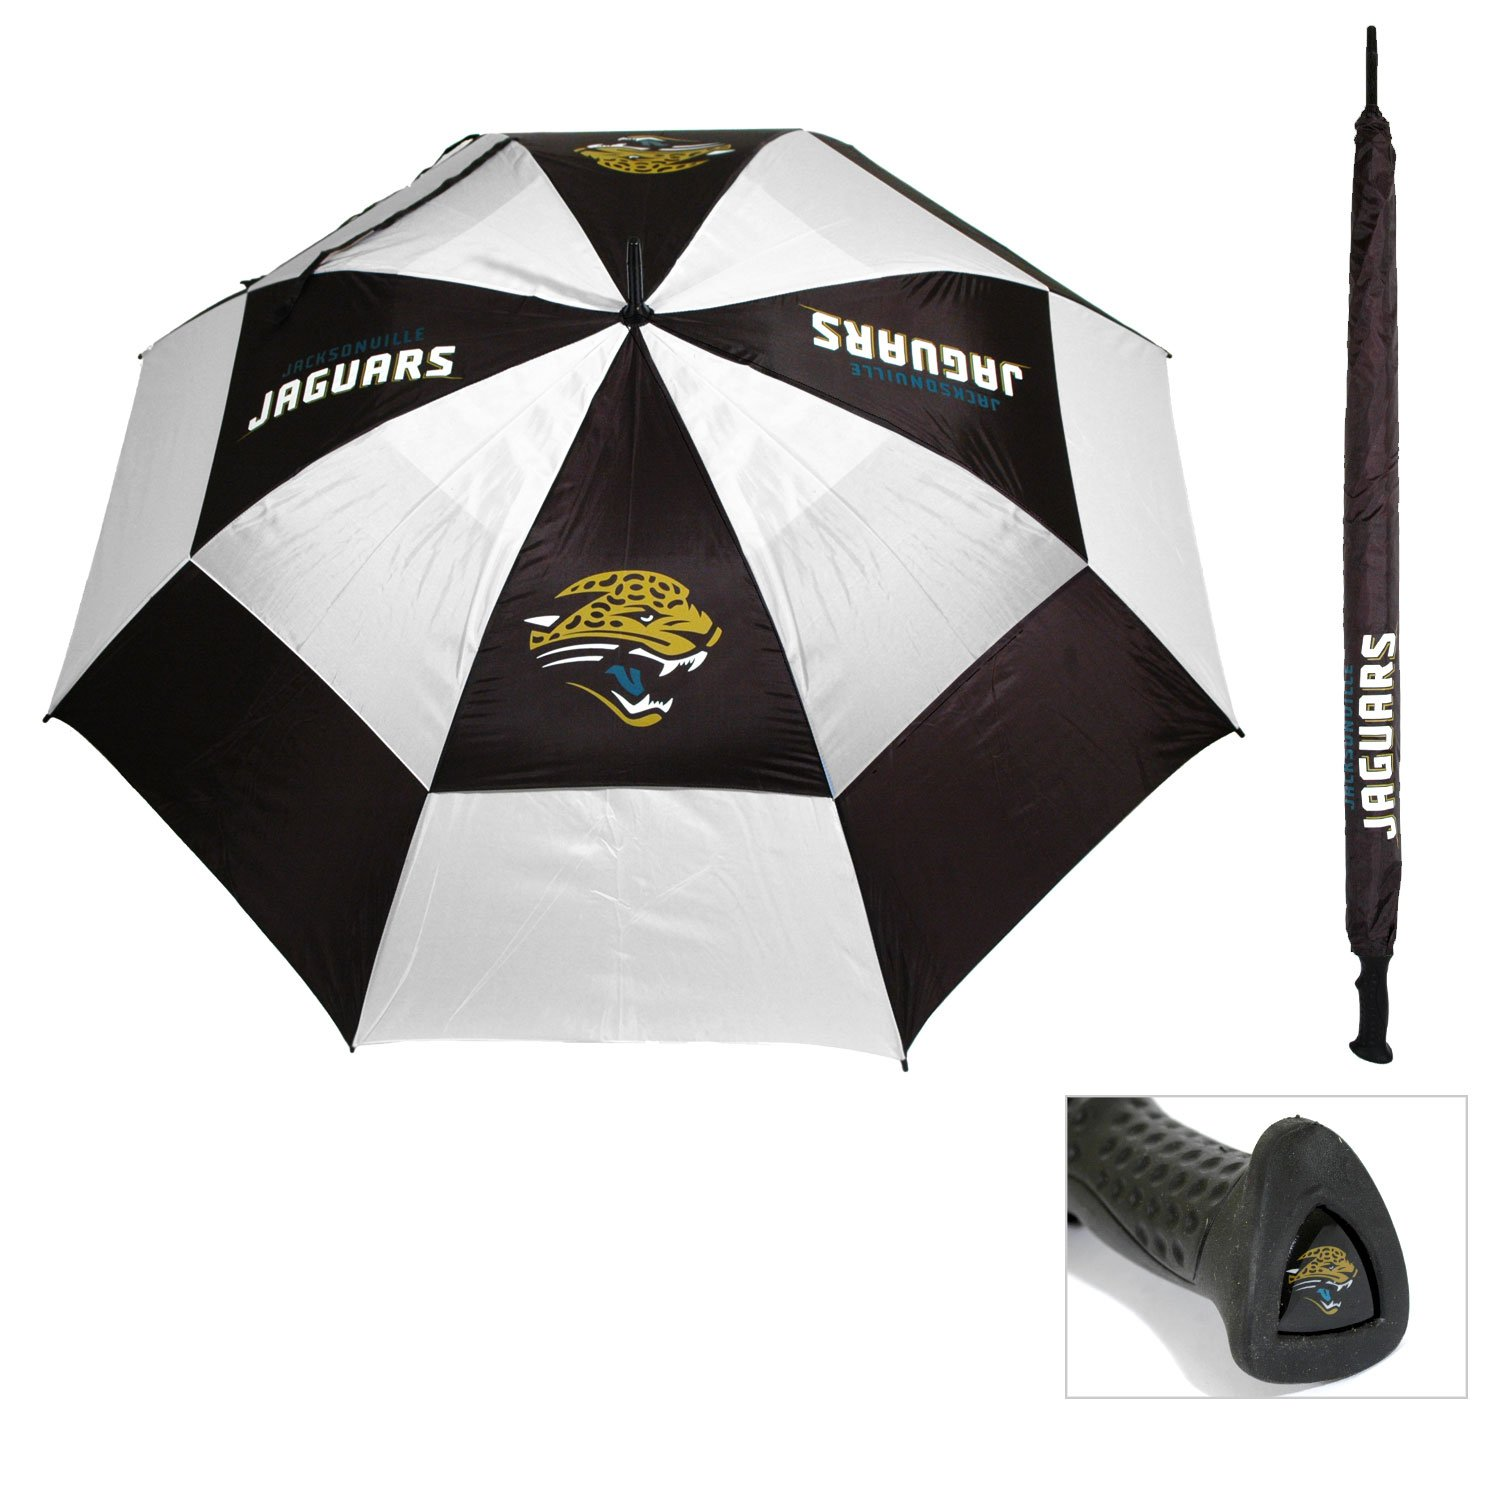 Team Golf NFL 62'' Golf Umbrella with Protective Sheath, Double Canopy Wind Protection Design, Auto Open Button